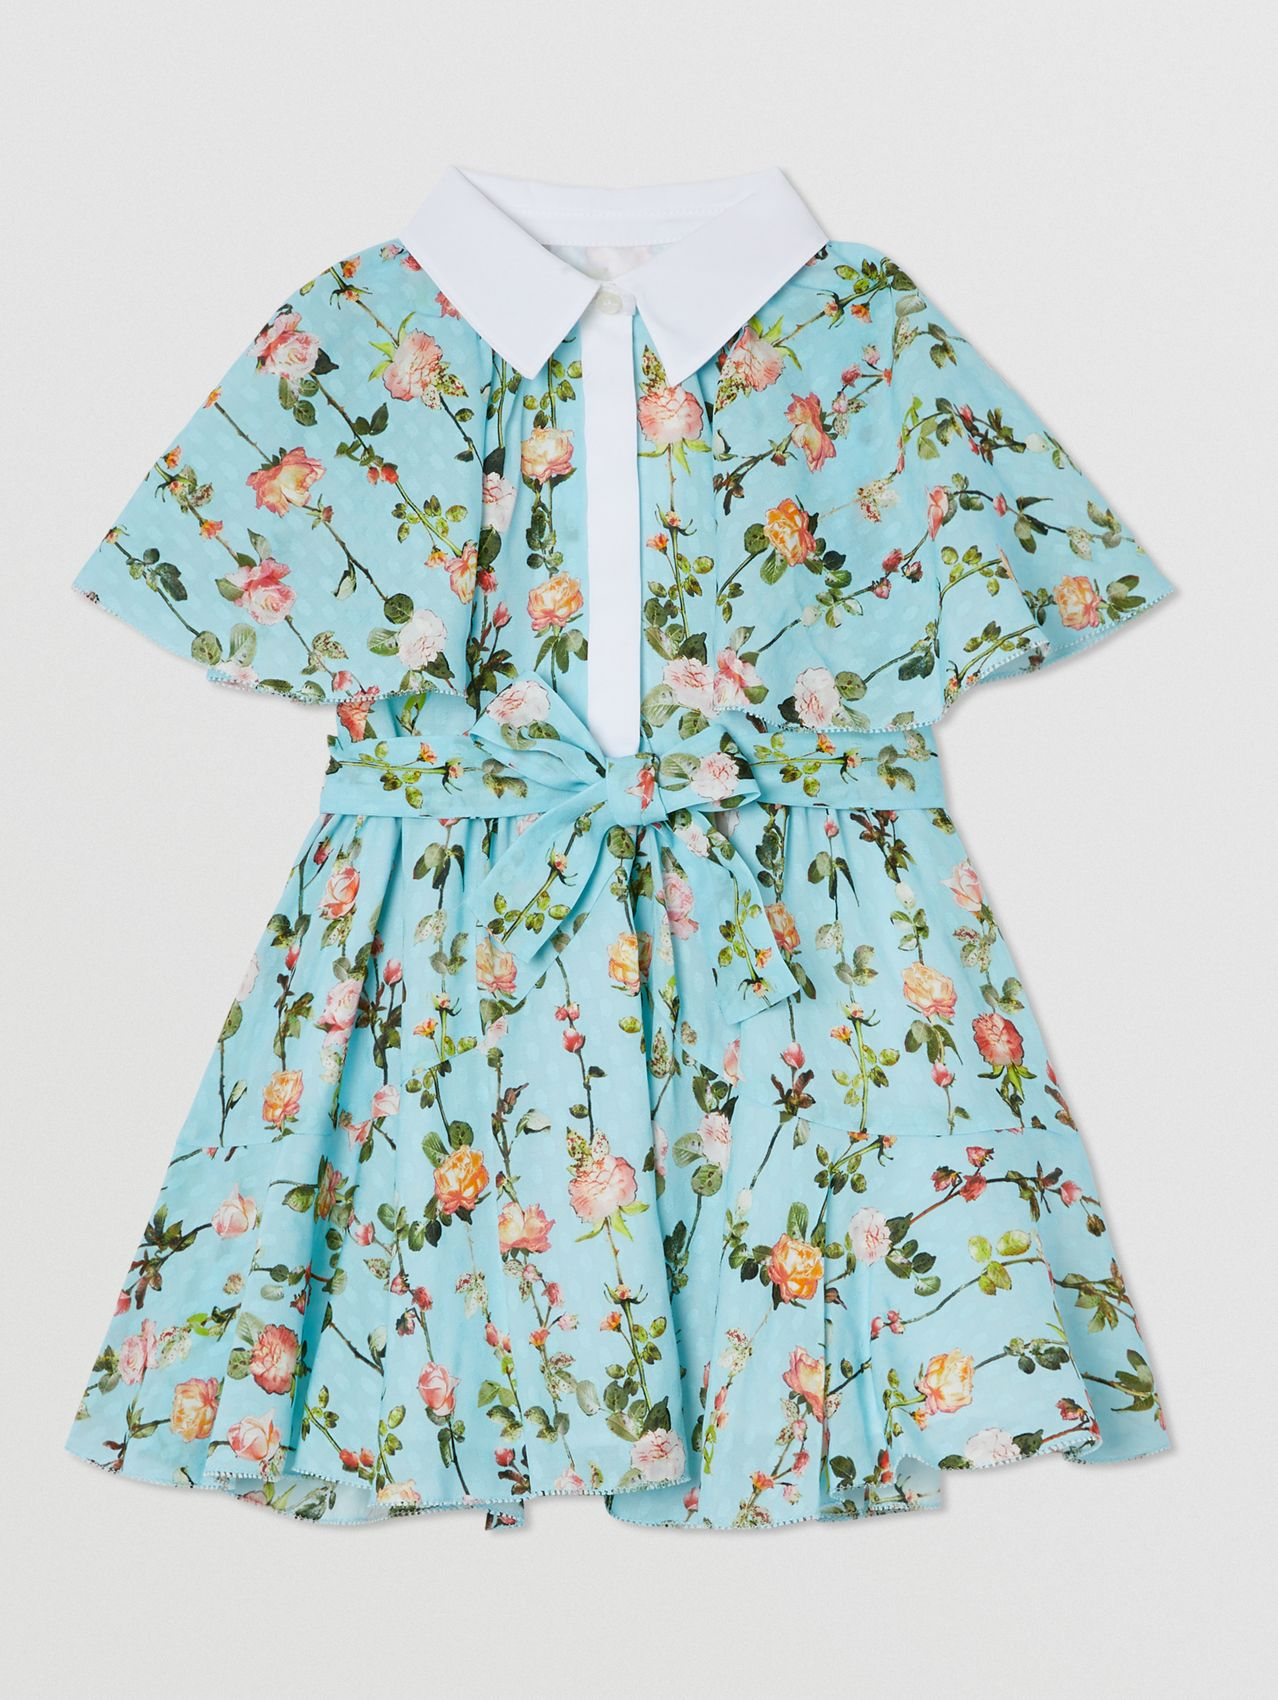 Short-sleeve Cape Detail Rose Print Dress in Blue Topaz